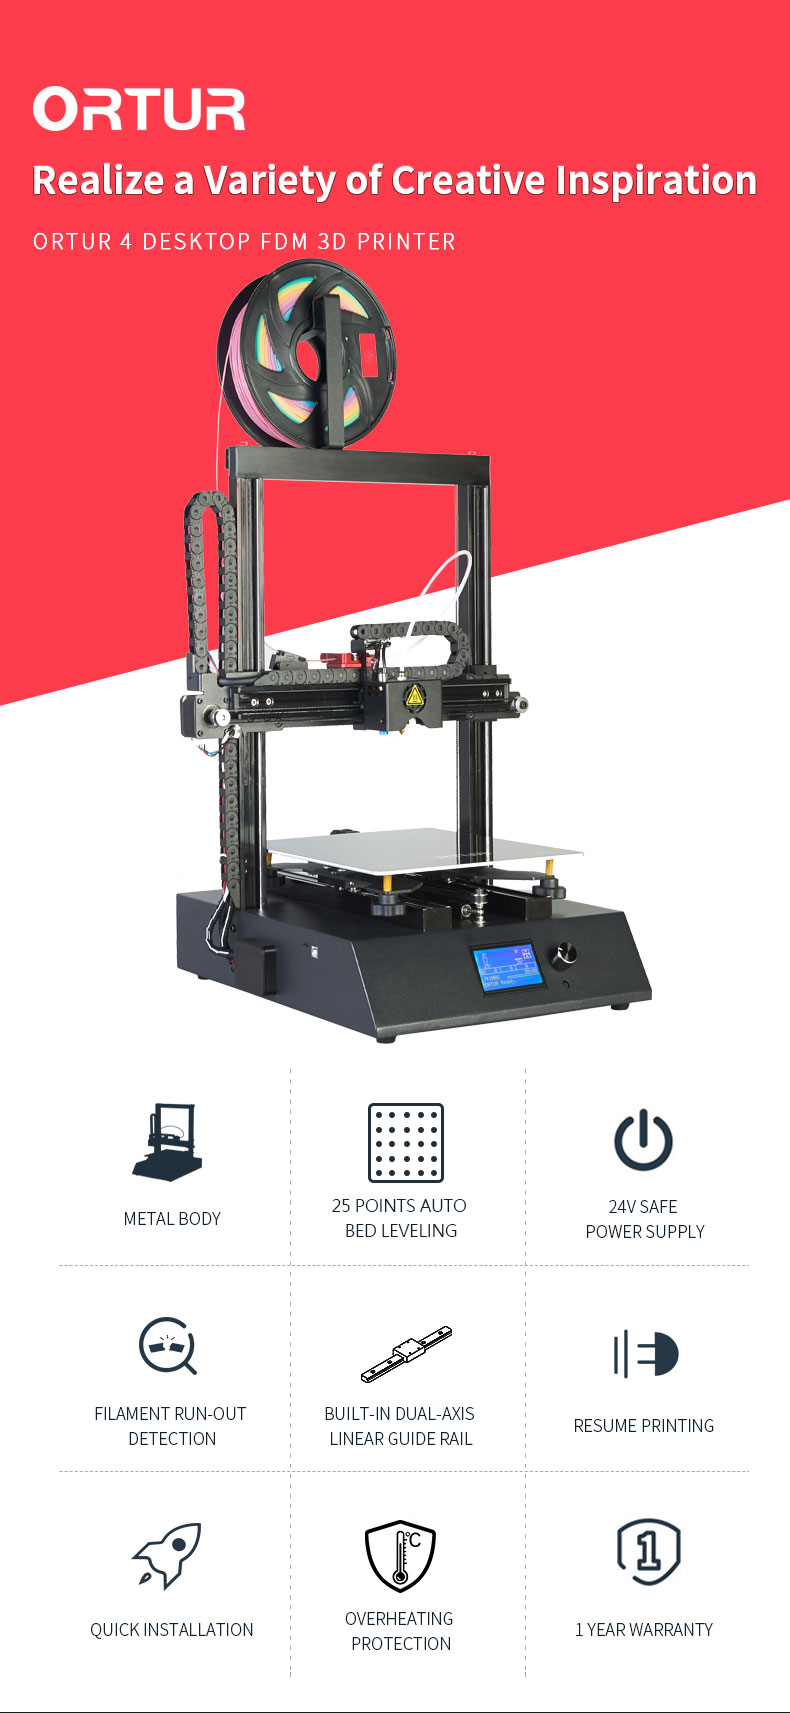 3d Printer Machines Ortur4 25 Points Hotbed Auto Leveling Impresora 3d Product Supply DIY Digital Printers for Novelty Salon